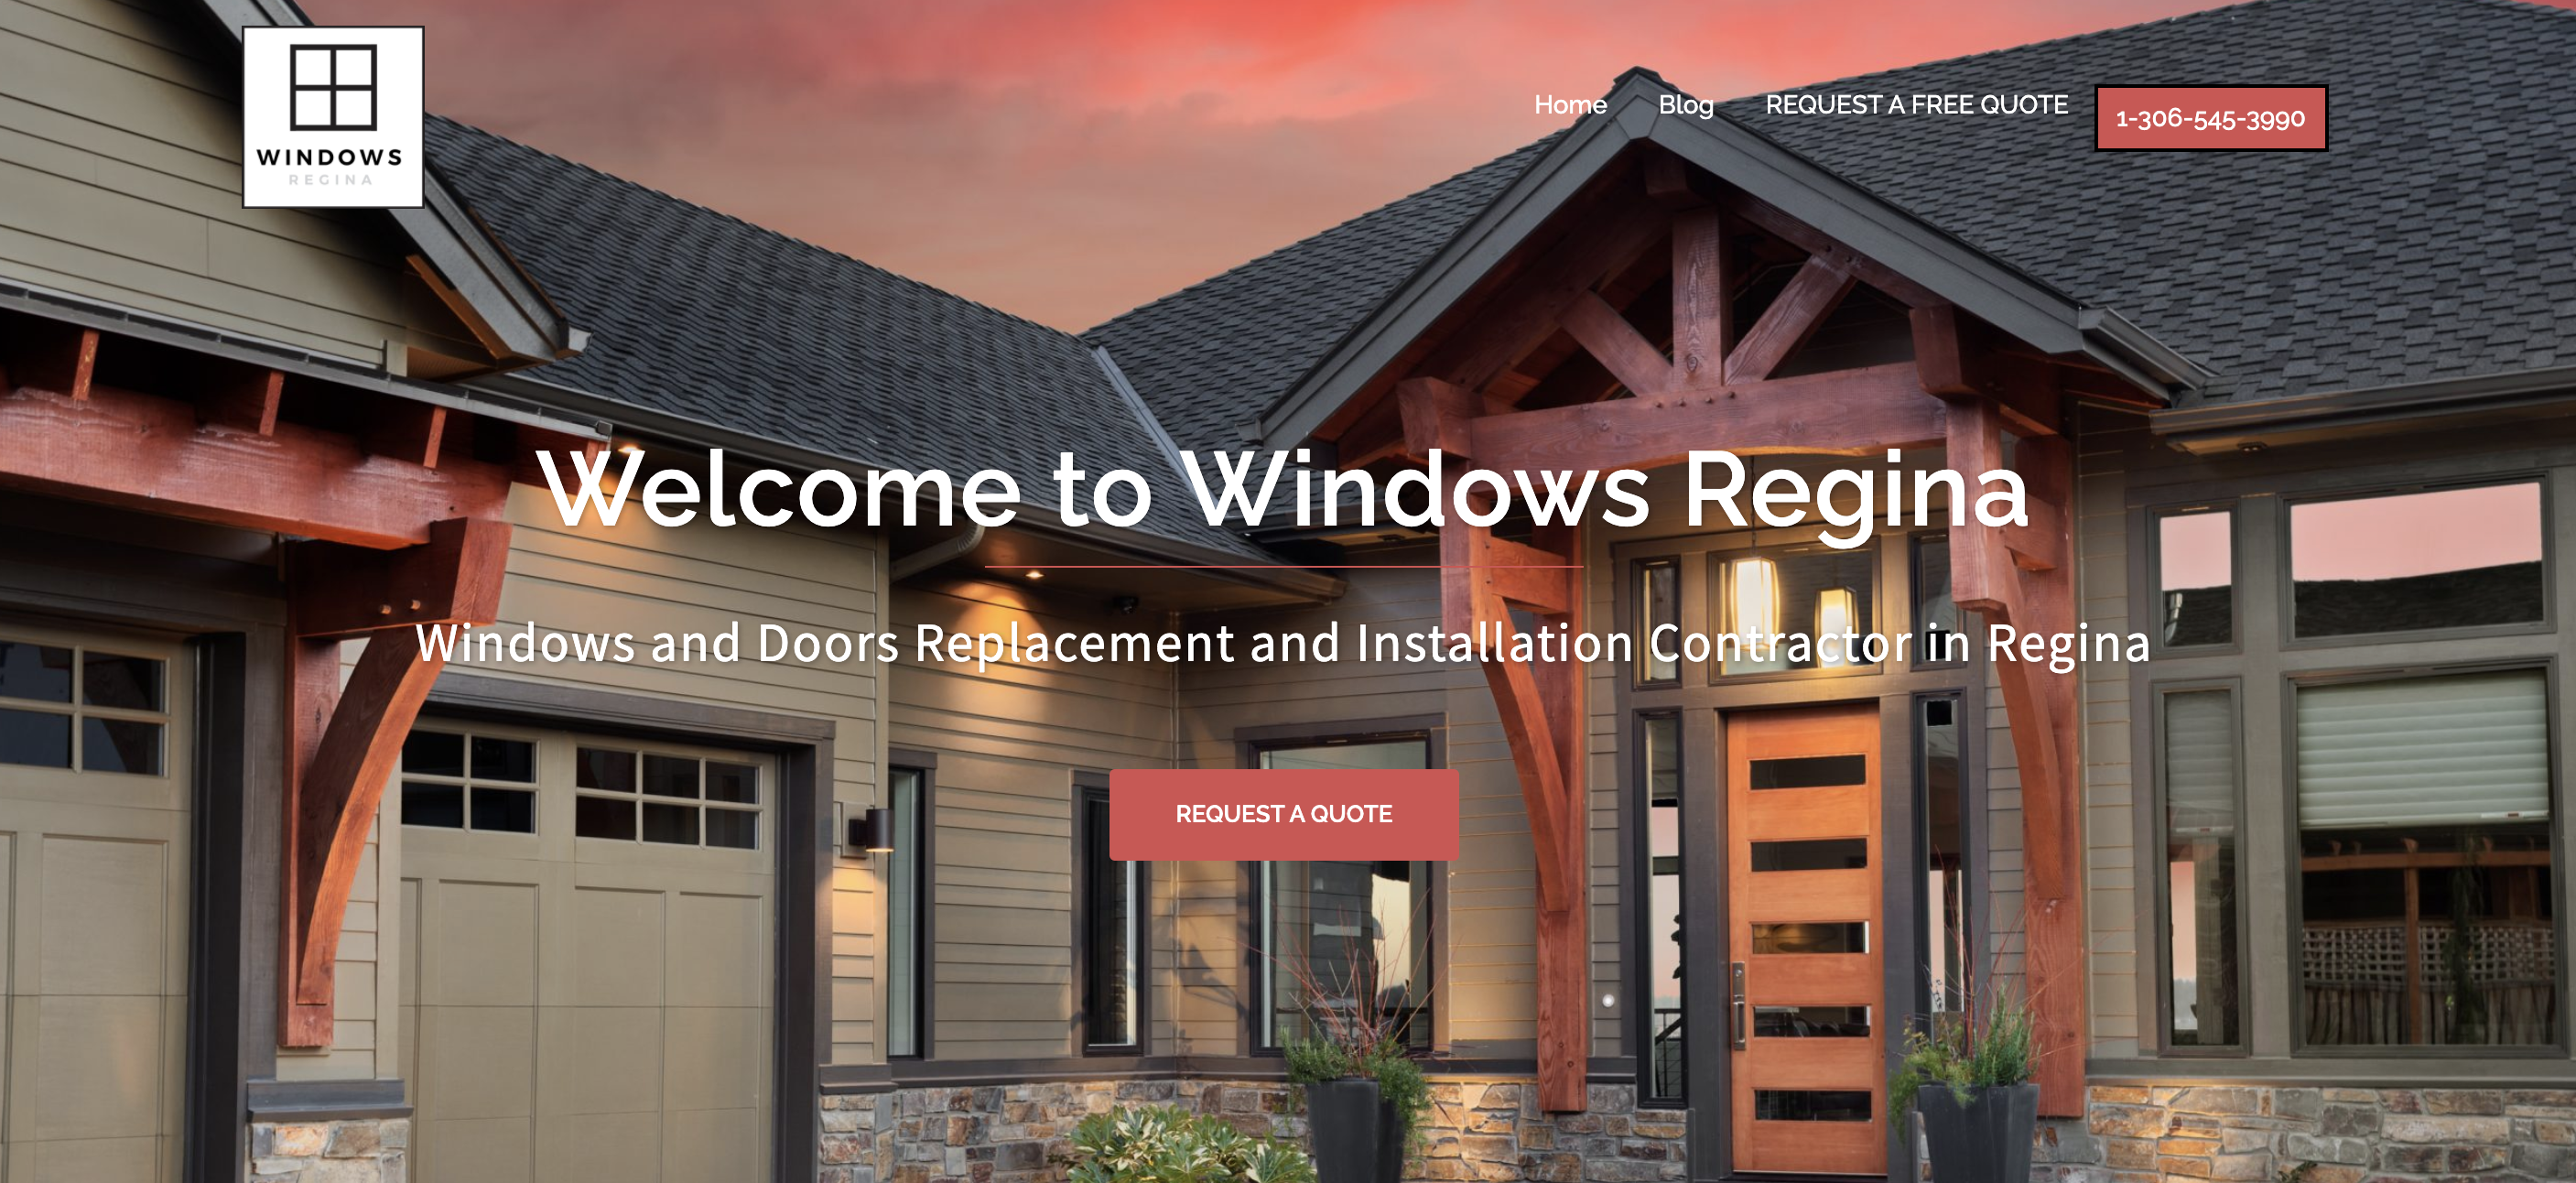 Window Repair Can be Easier and Cheaper Than Replacing the Window with Windows Regina